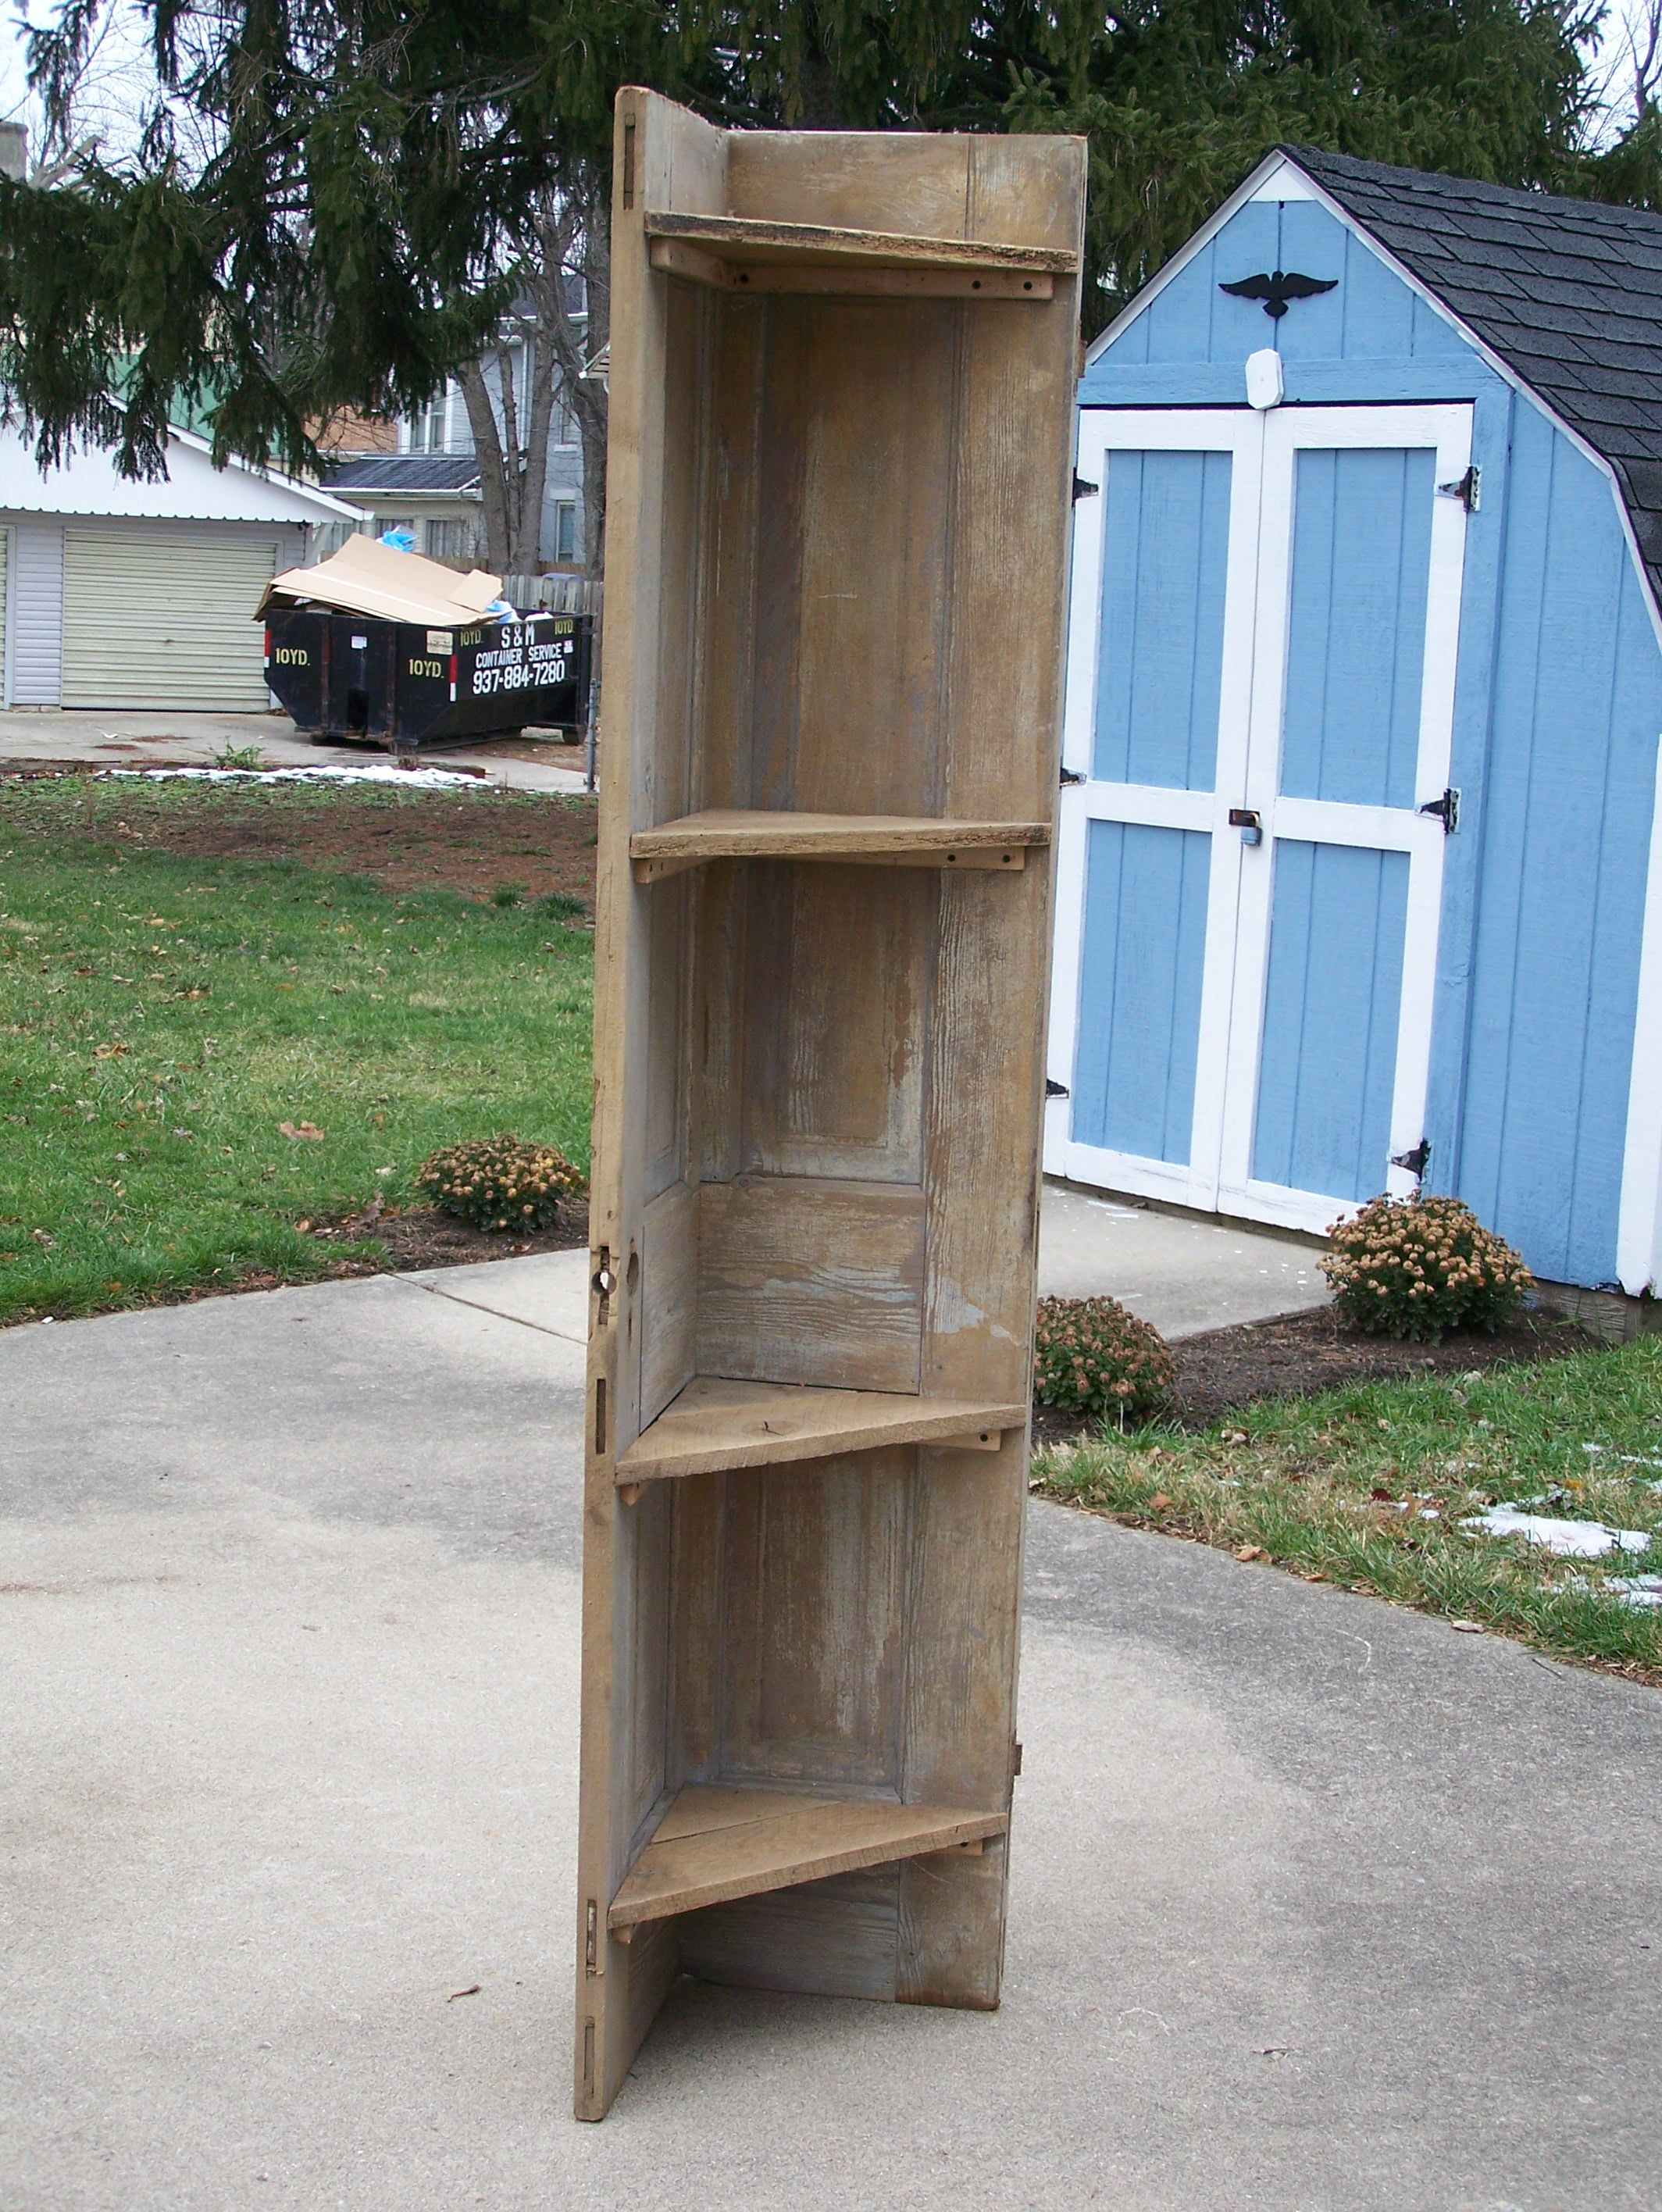 The Shelves Are From Old Barn Siding